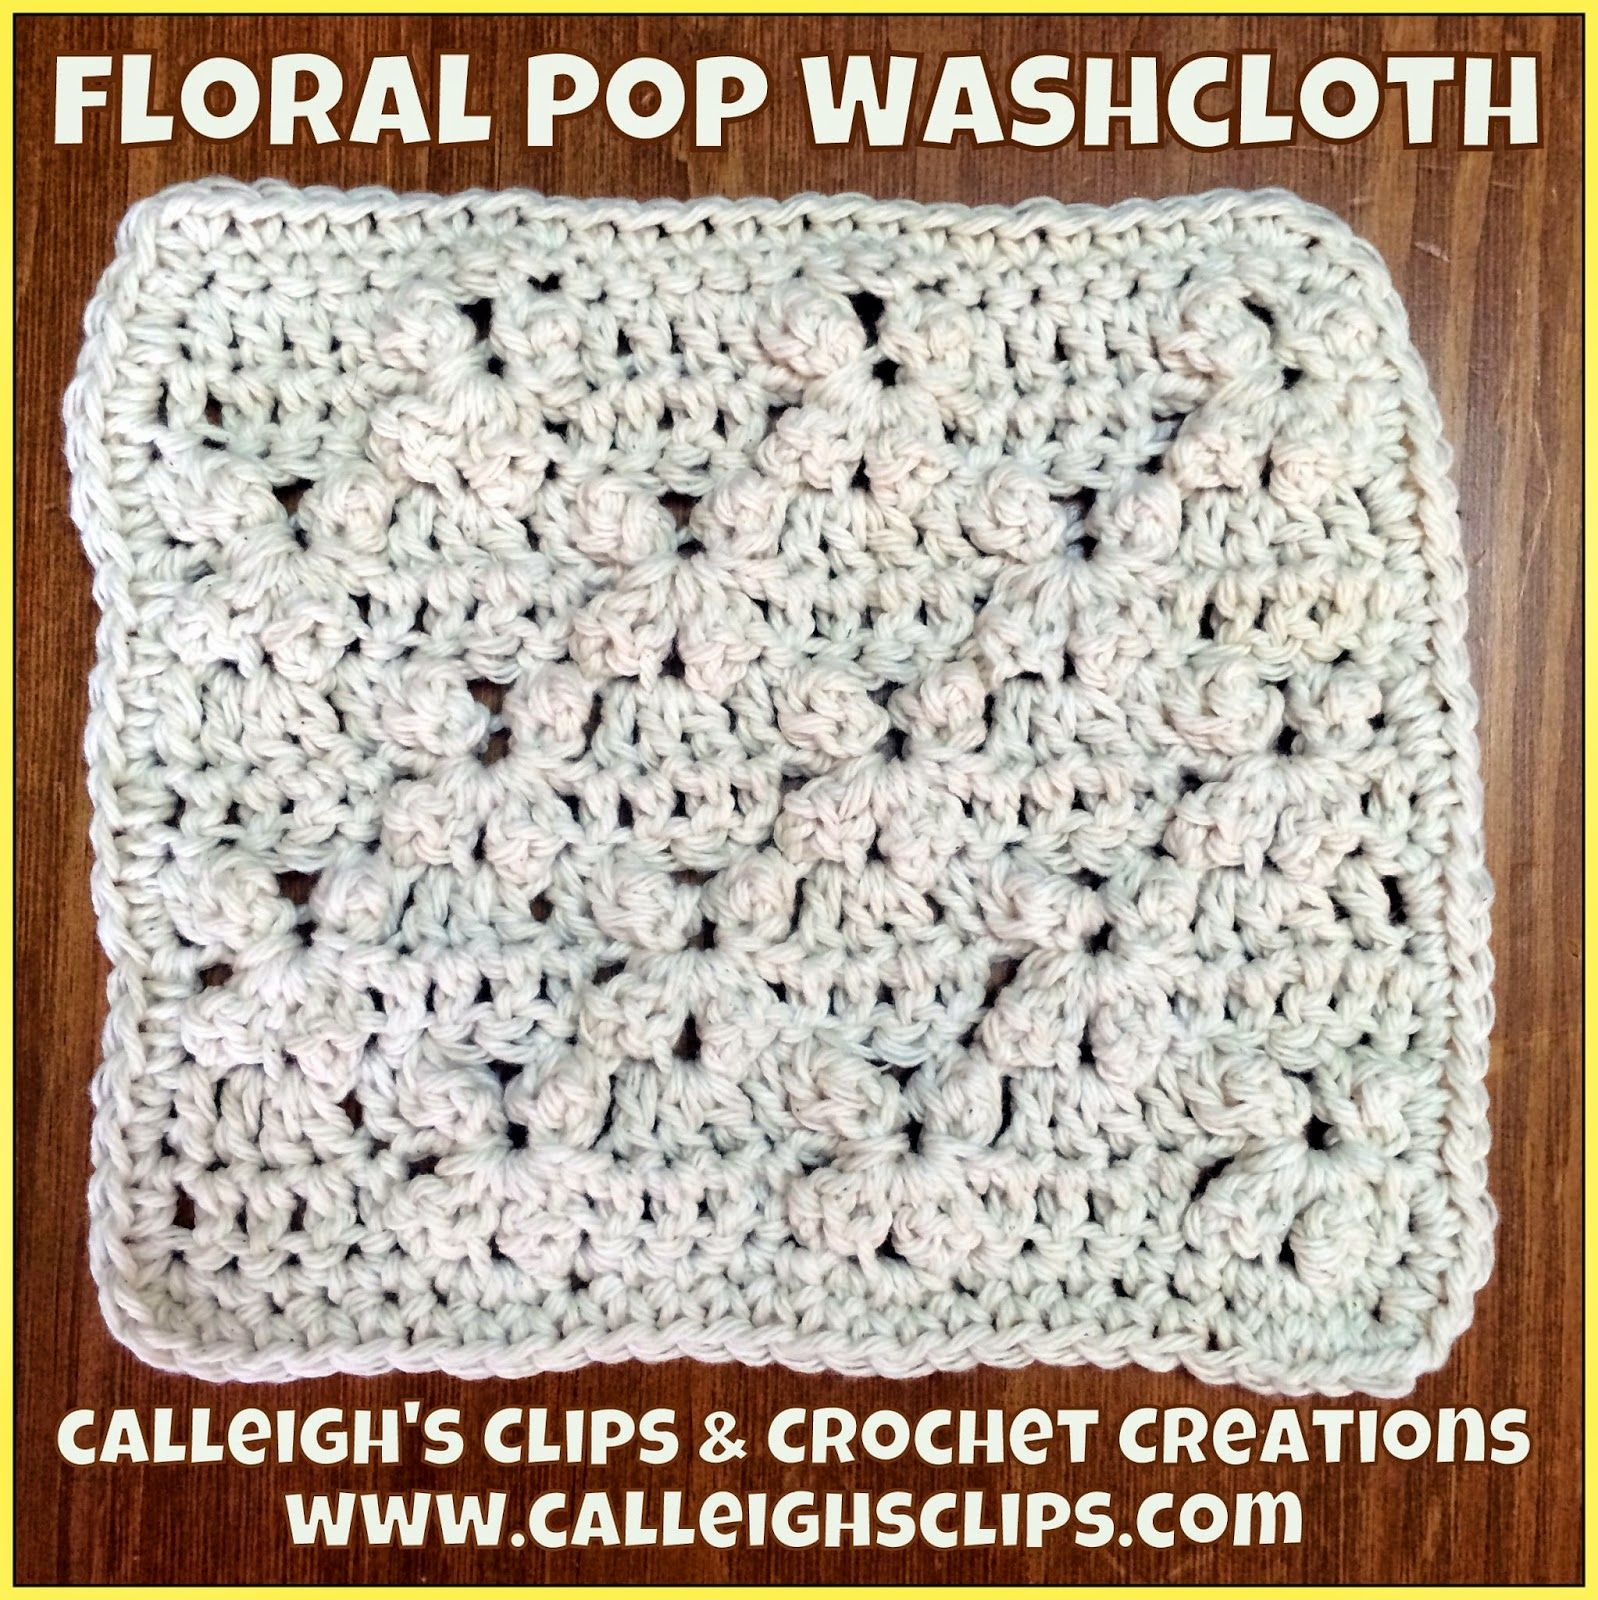 Calleigh\'s Clips & Crochet Creations: Floral Pop Washcloth Free ...